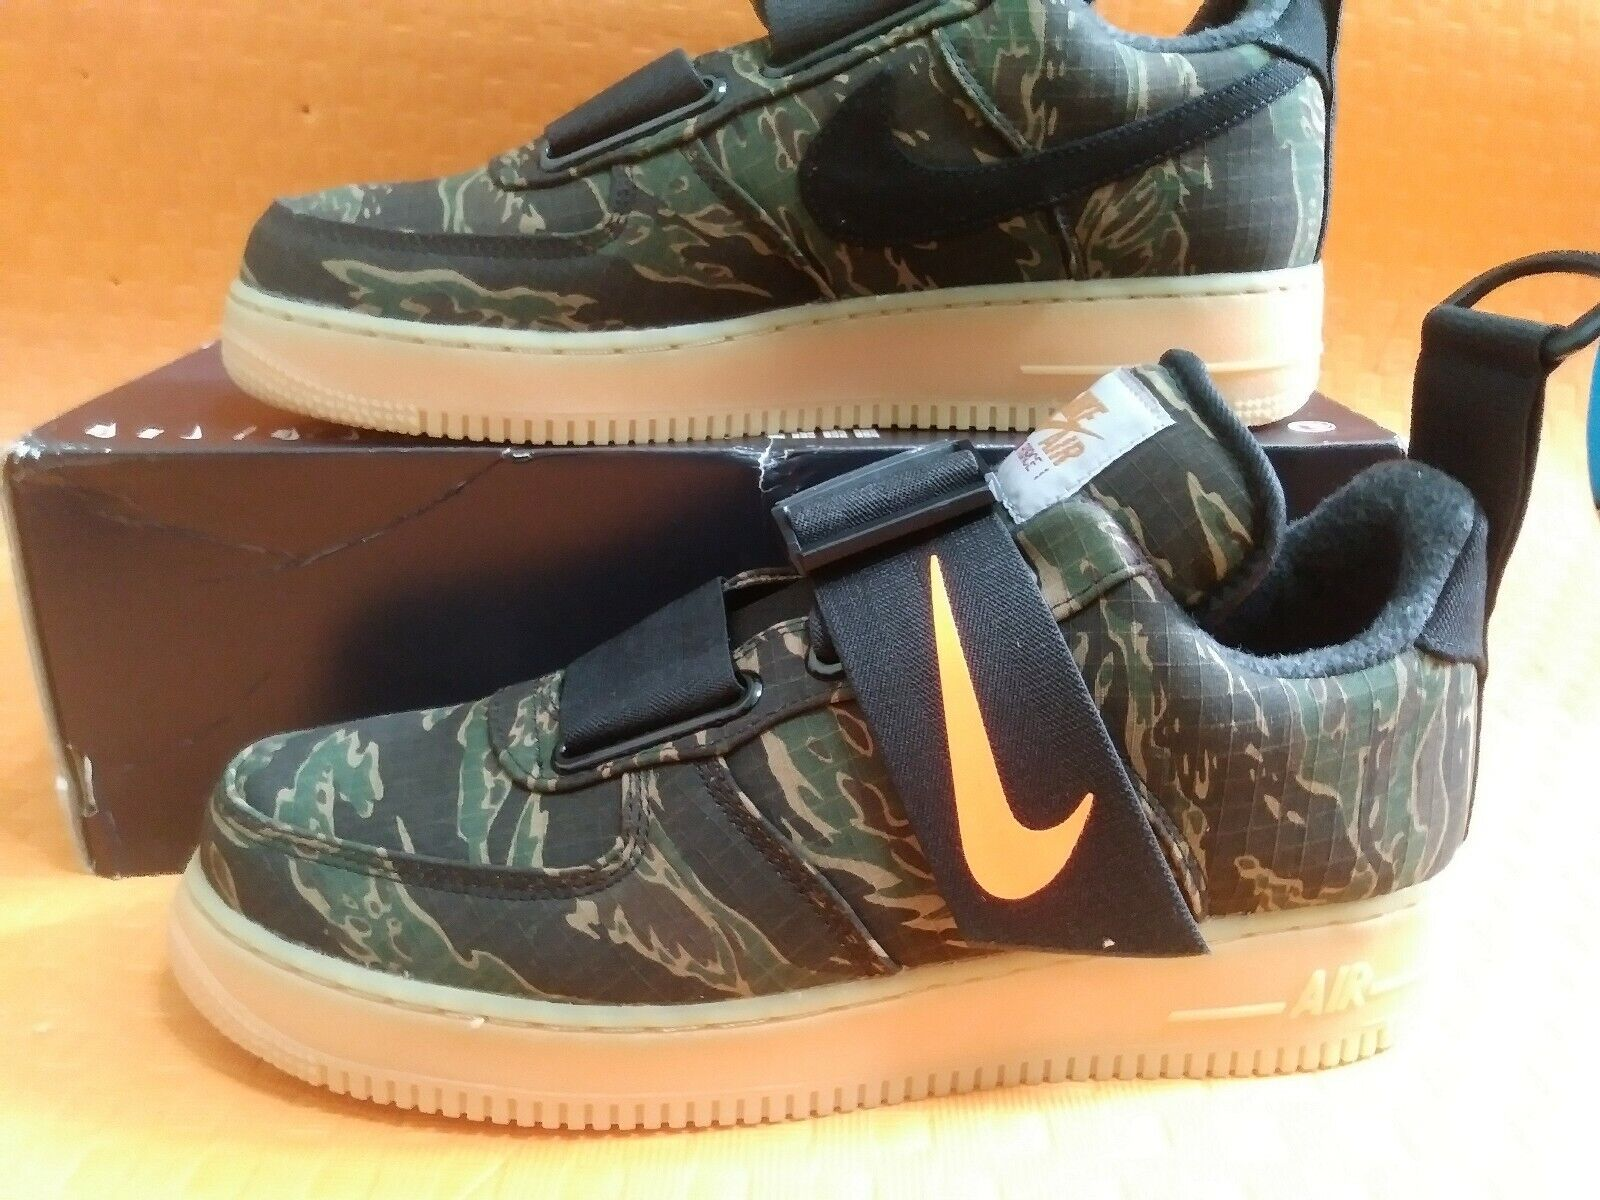 New brand Nike  Air Force1 UT Low PRM WIP Camo Green orange AV4112-300 sz 12